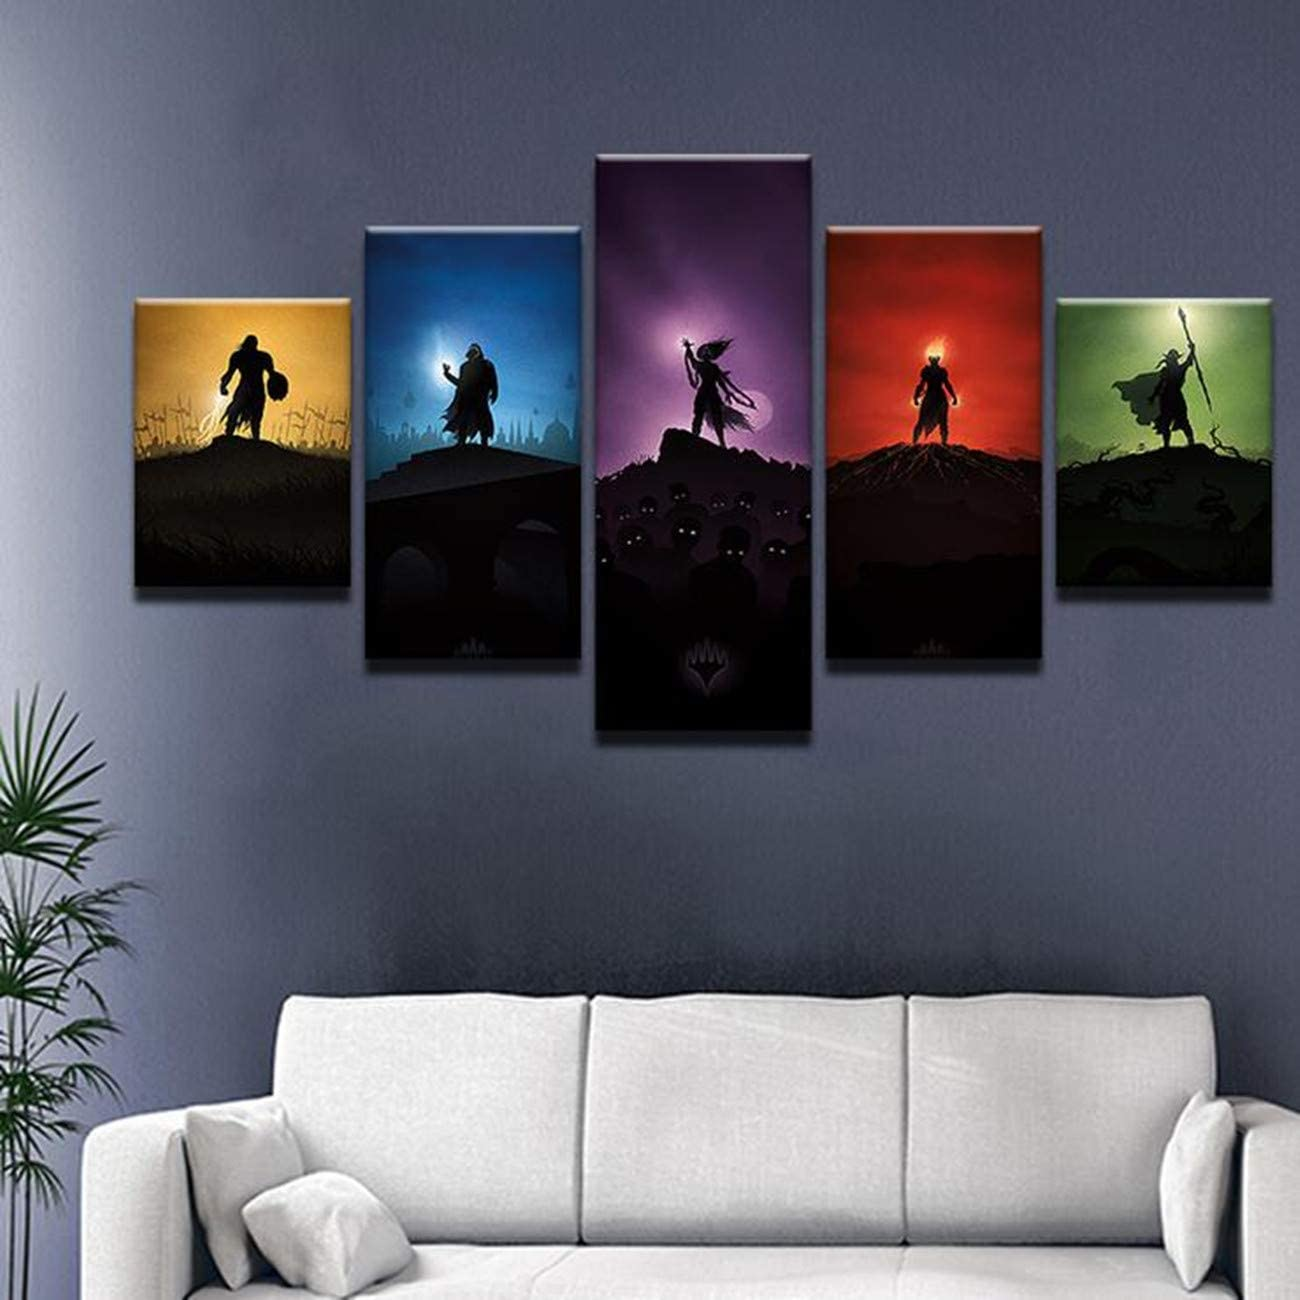 Poster Customize Size The 5th Book Of Magic Art Prints Wall Decor Living Room Wall Ready To Hang Art Print On Home Decor Wall Poster